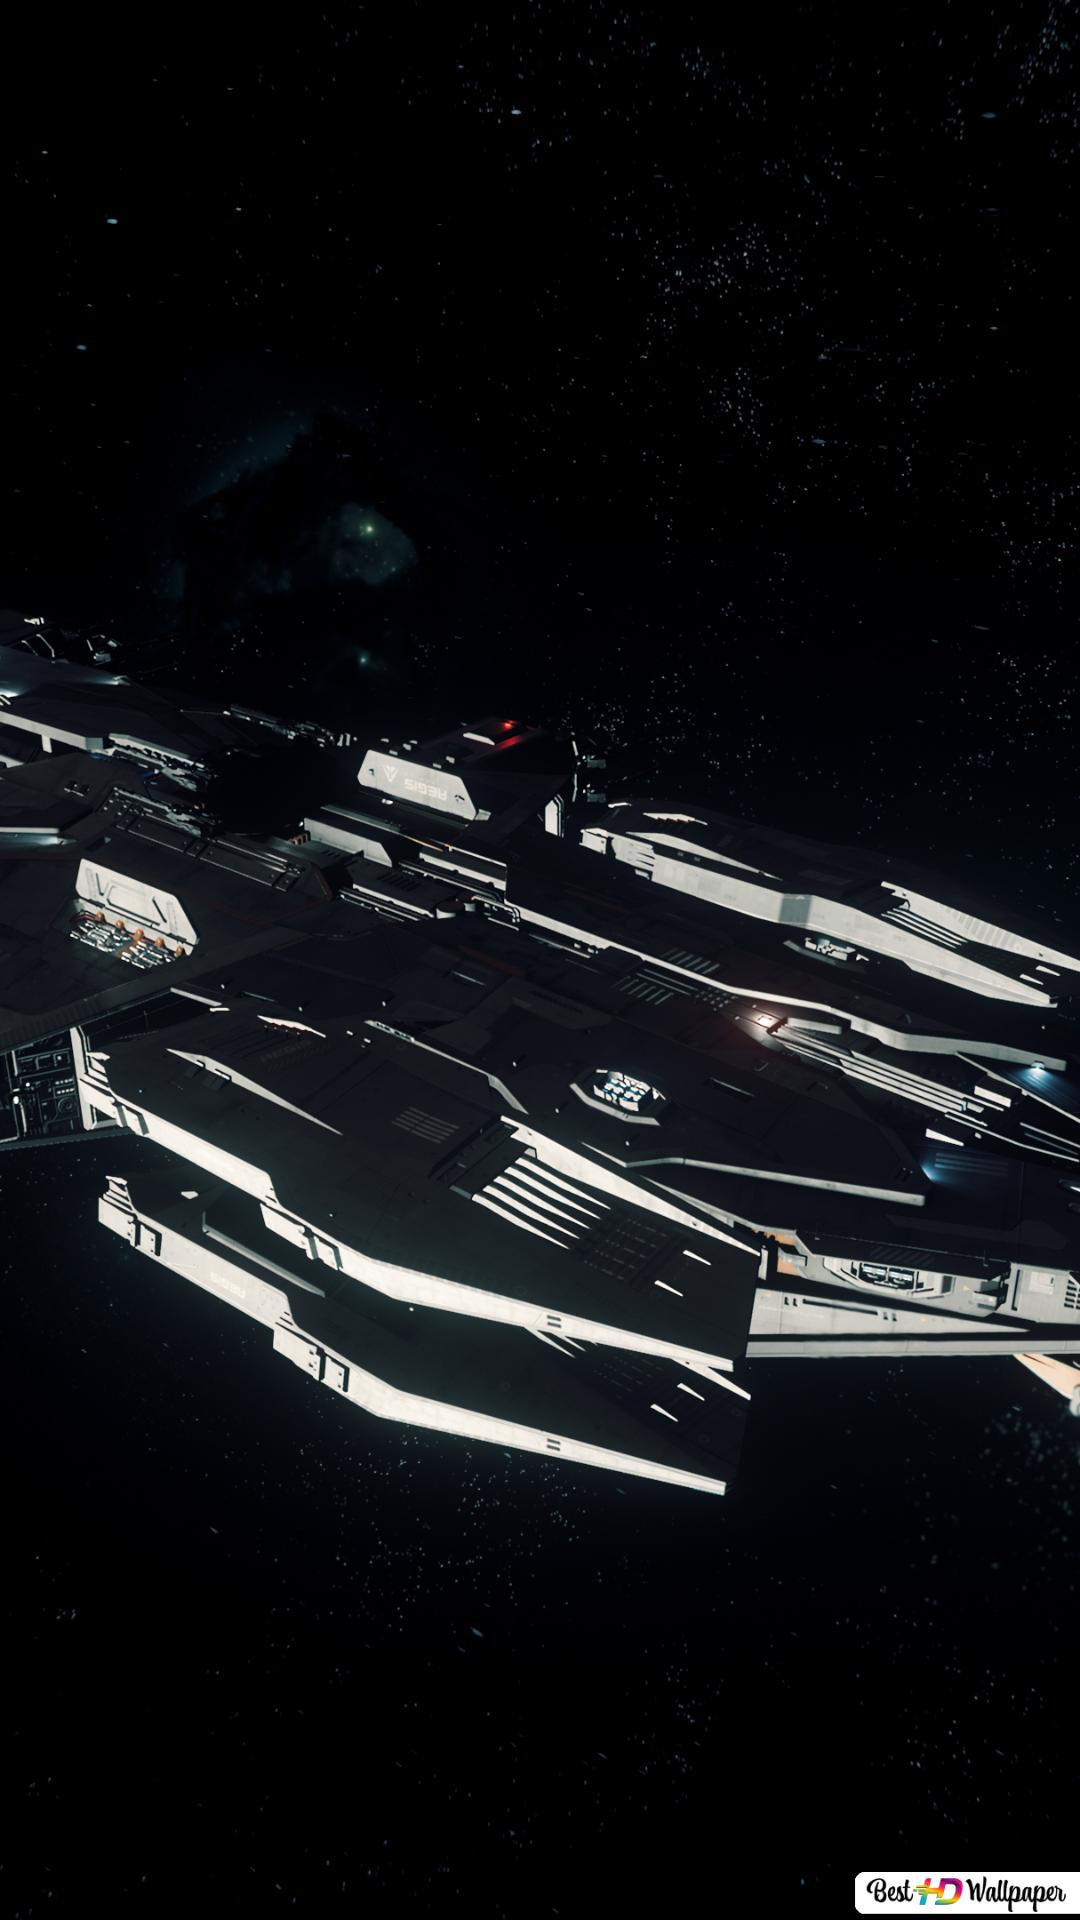 Star Citizen Hamerhaai In De Ruimte Hd Wallpaper Downloaden